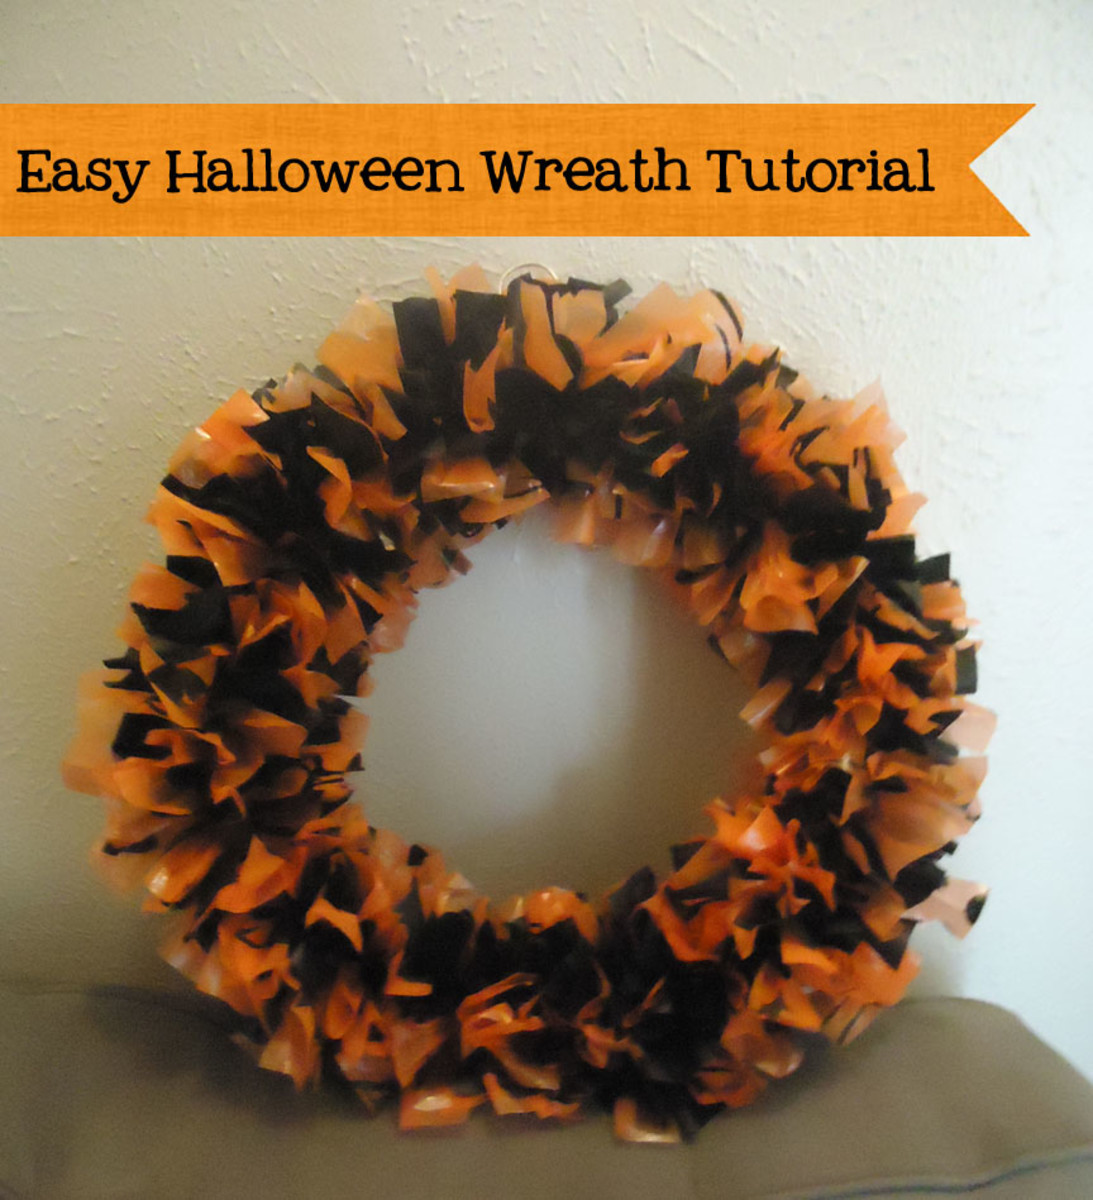 Easy Halloween Wreath Tutorial